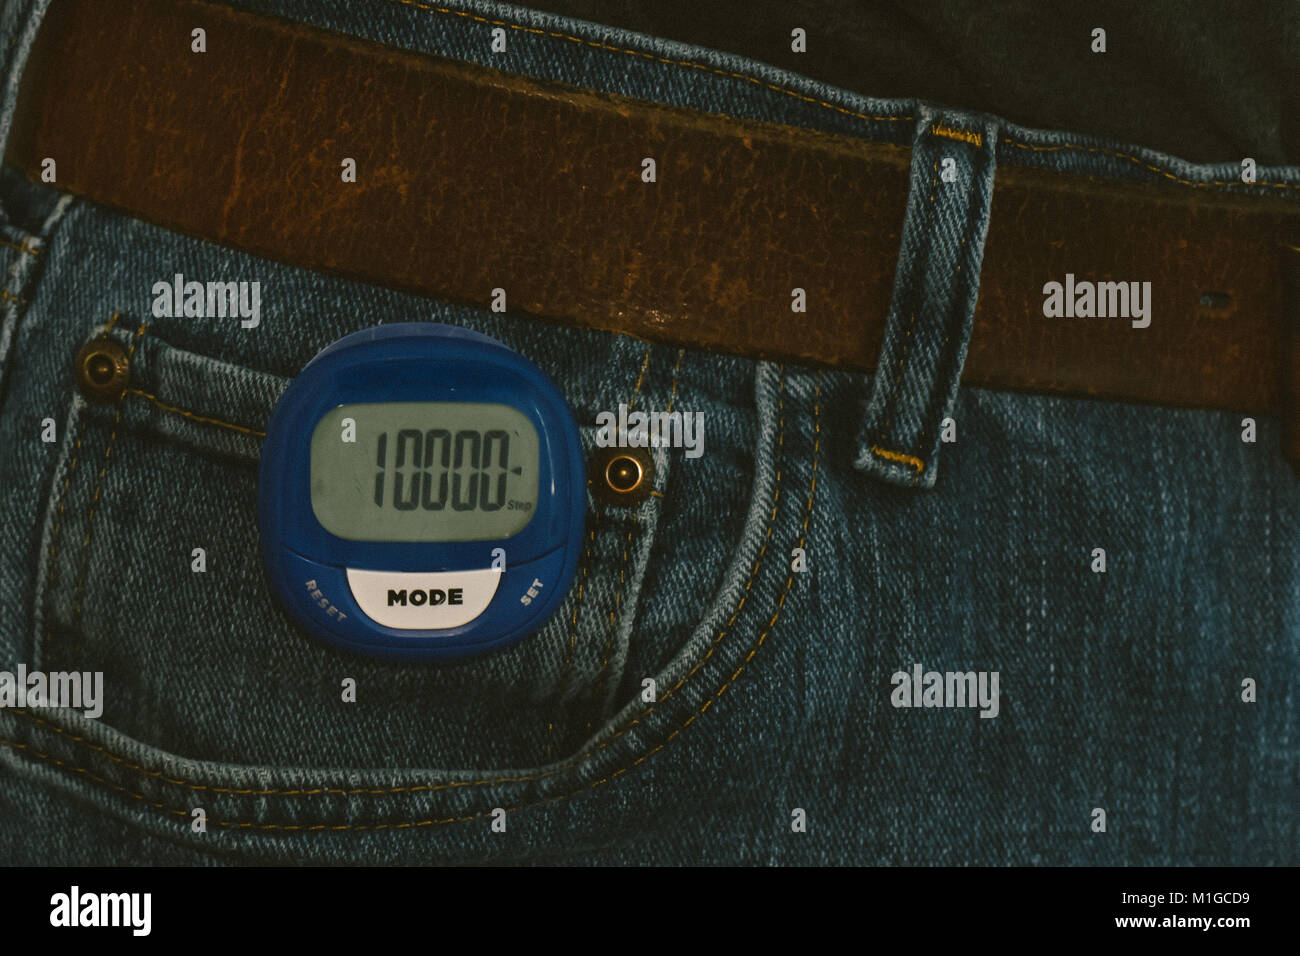 10,000 steps on a pedometer, attached to a pair of blue jeans